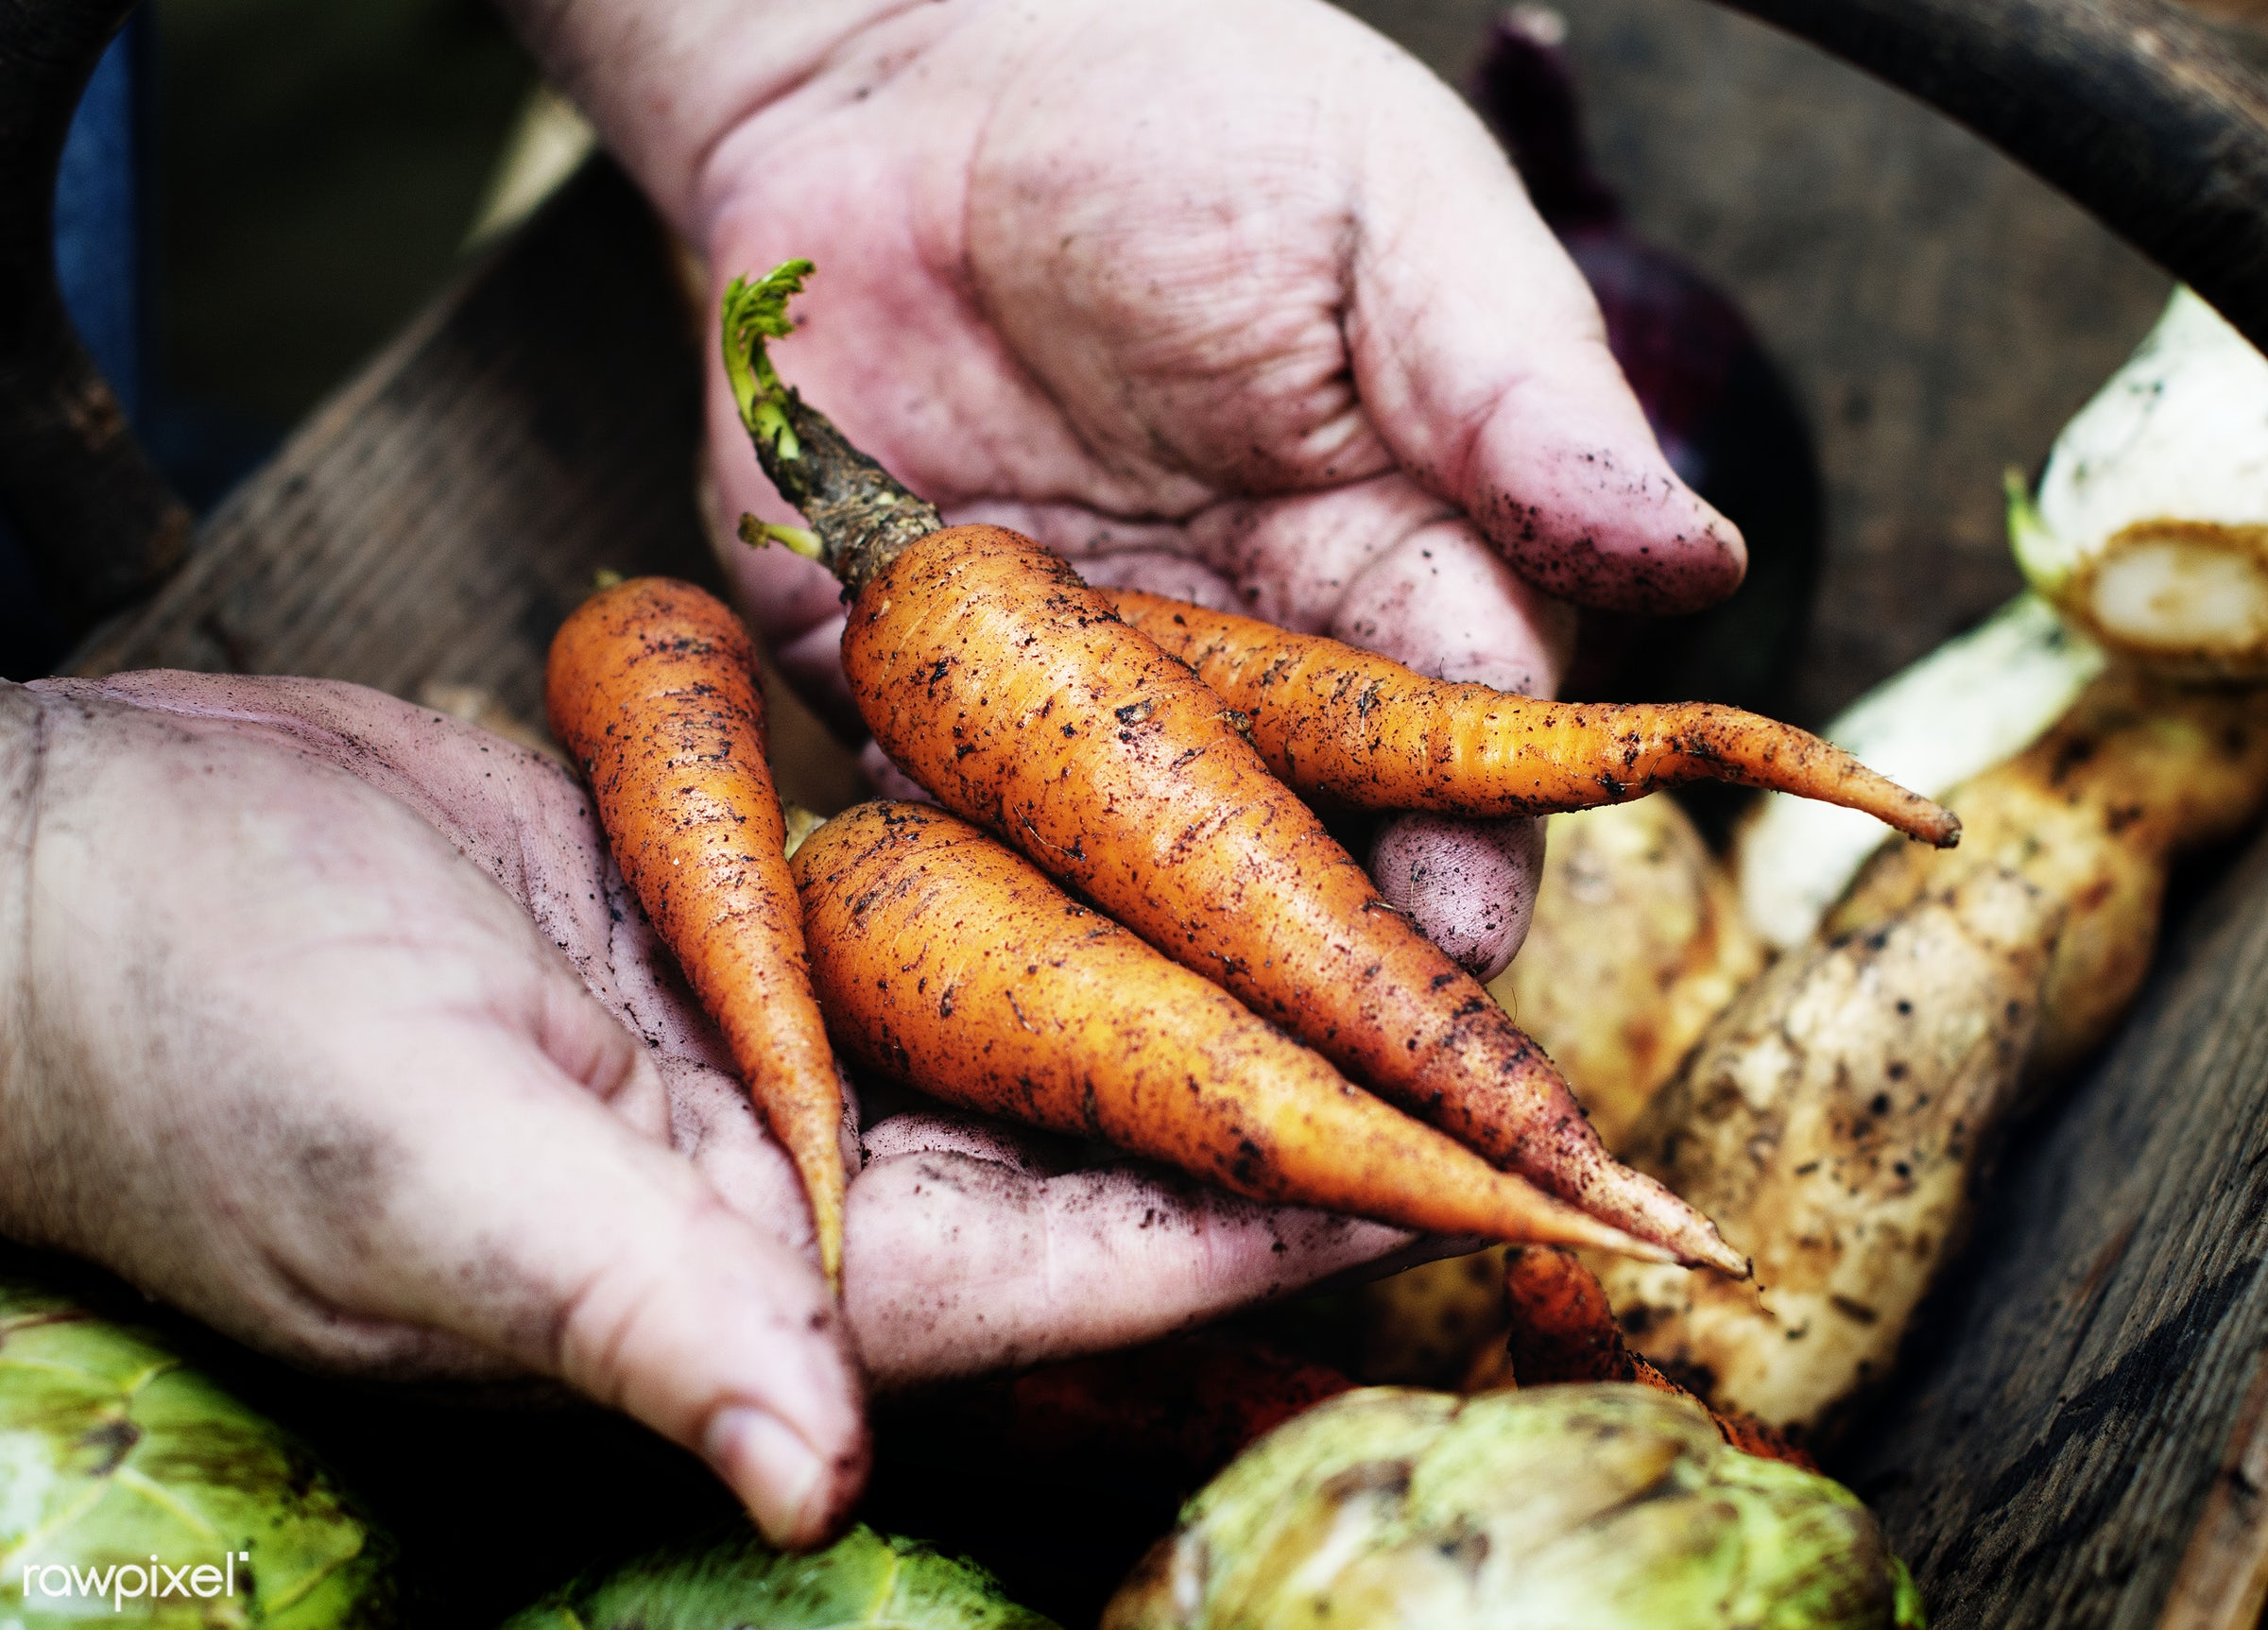 A person handling carrots - raw, diverse, farm, ingredients, farmer, nature, fresh, hands, dirt, products, closeup,...